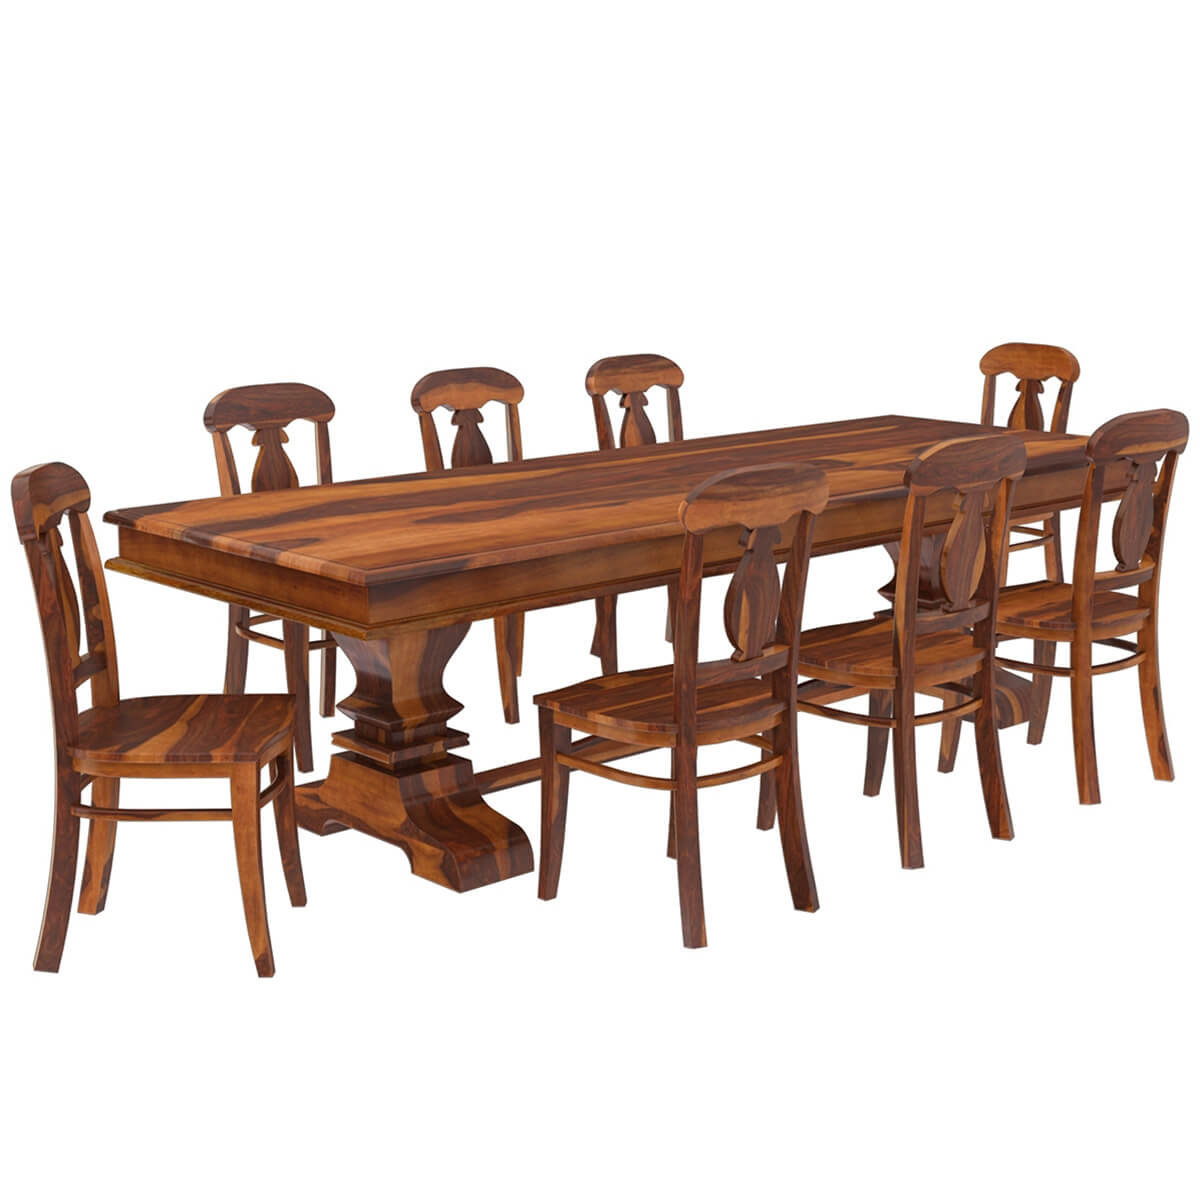 Nottingham Solid Wood 92 Trestle Dining Table Benches 2 Chairs